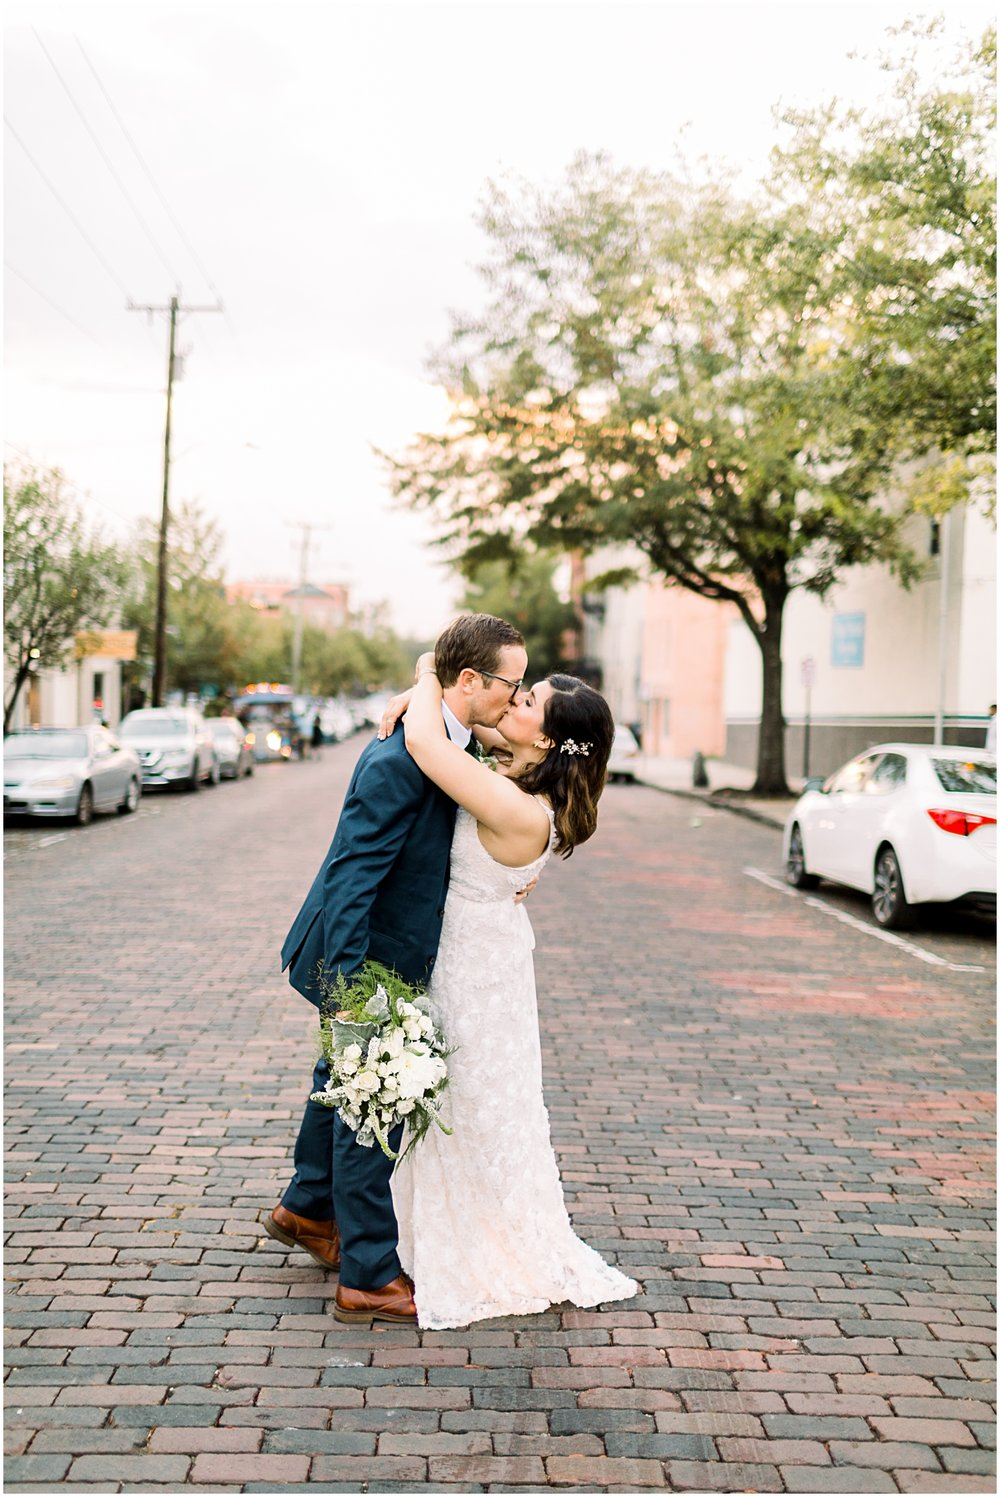 The Atrium, Downtown Wilmington NC Wedding_Erin L. Taylor Photography_0051.jpg